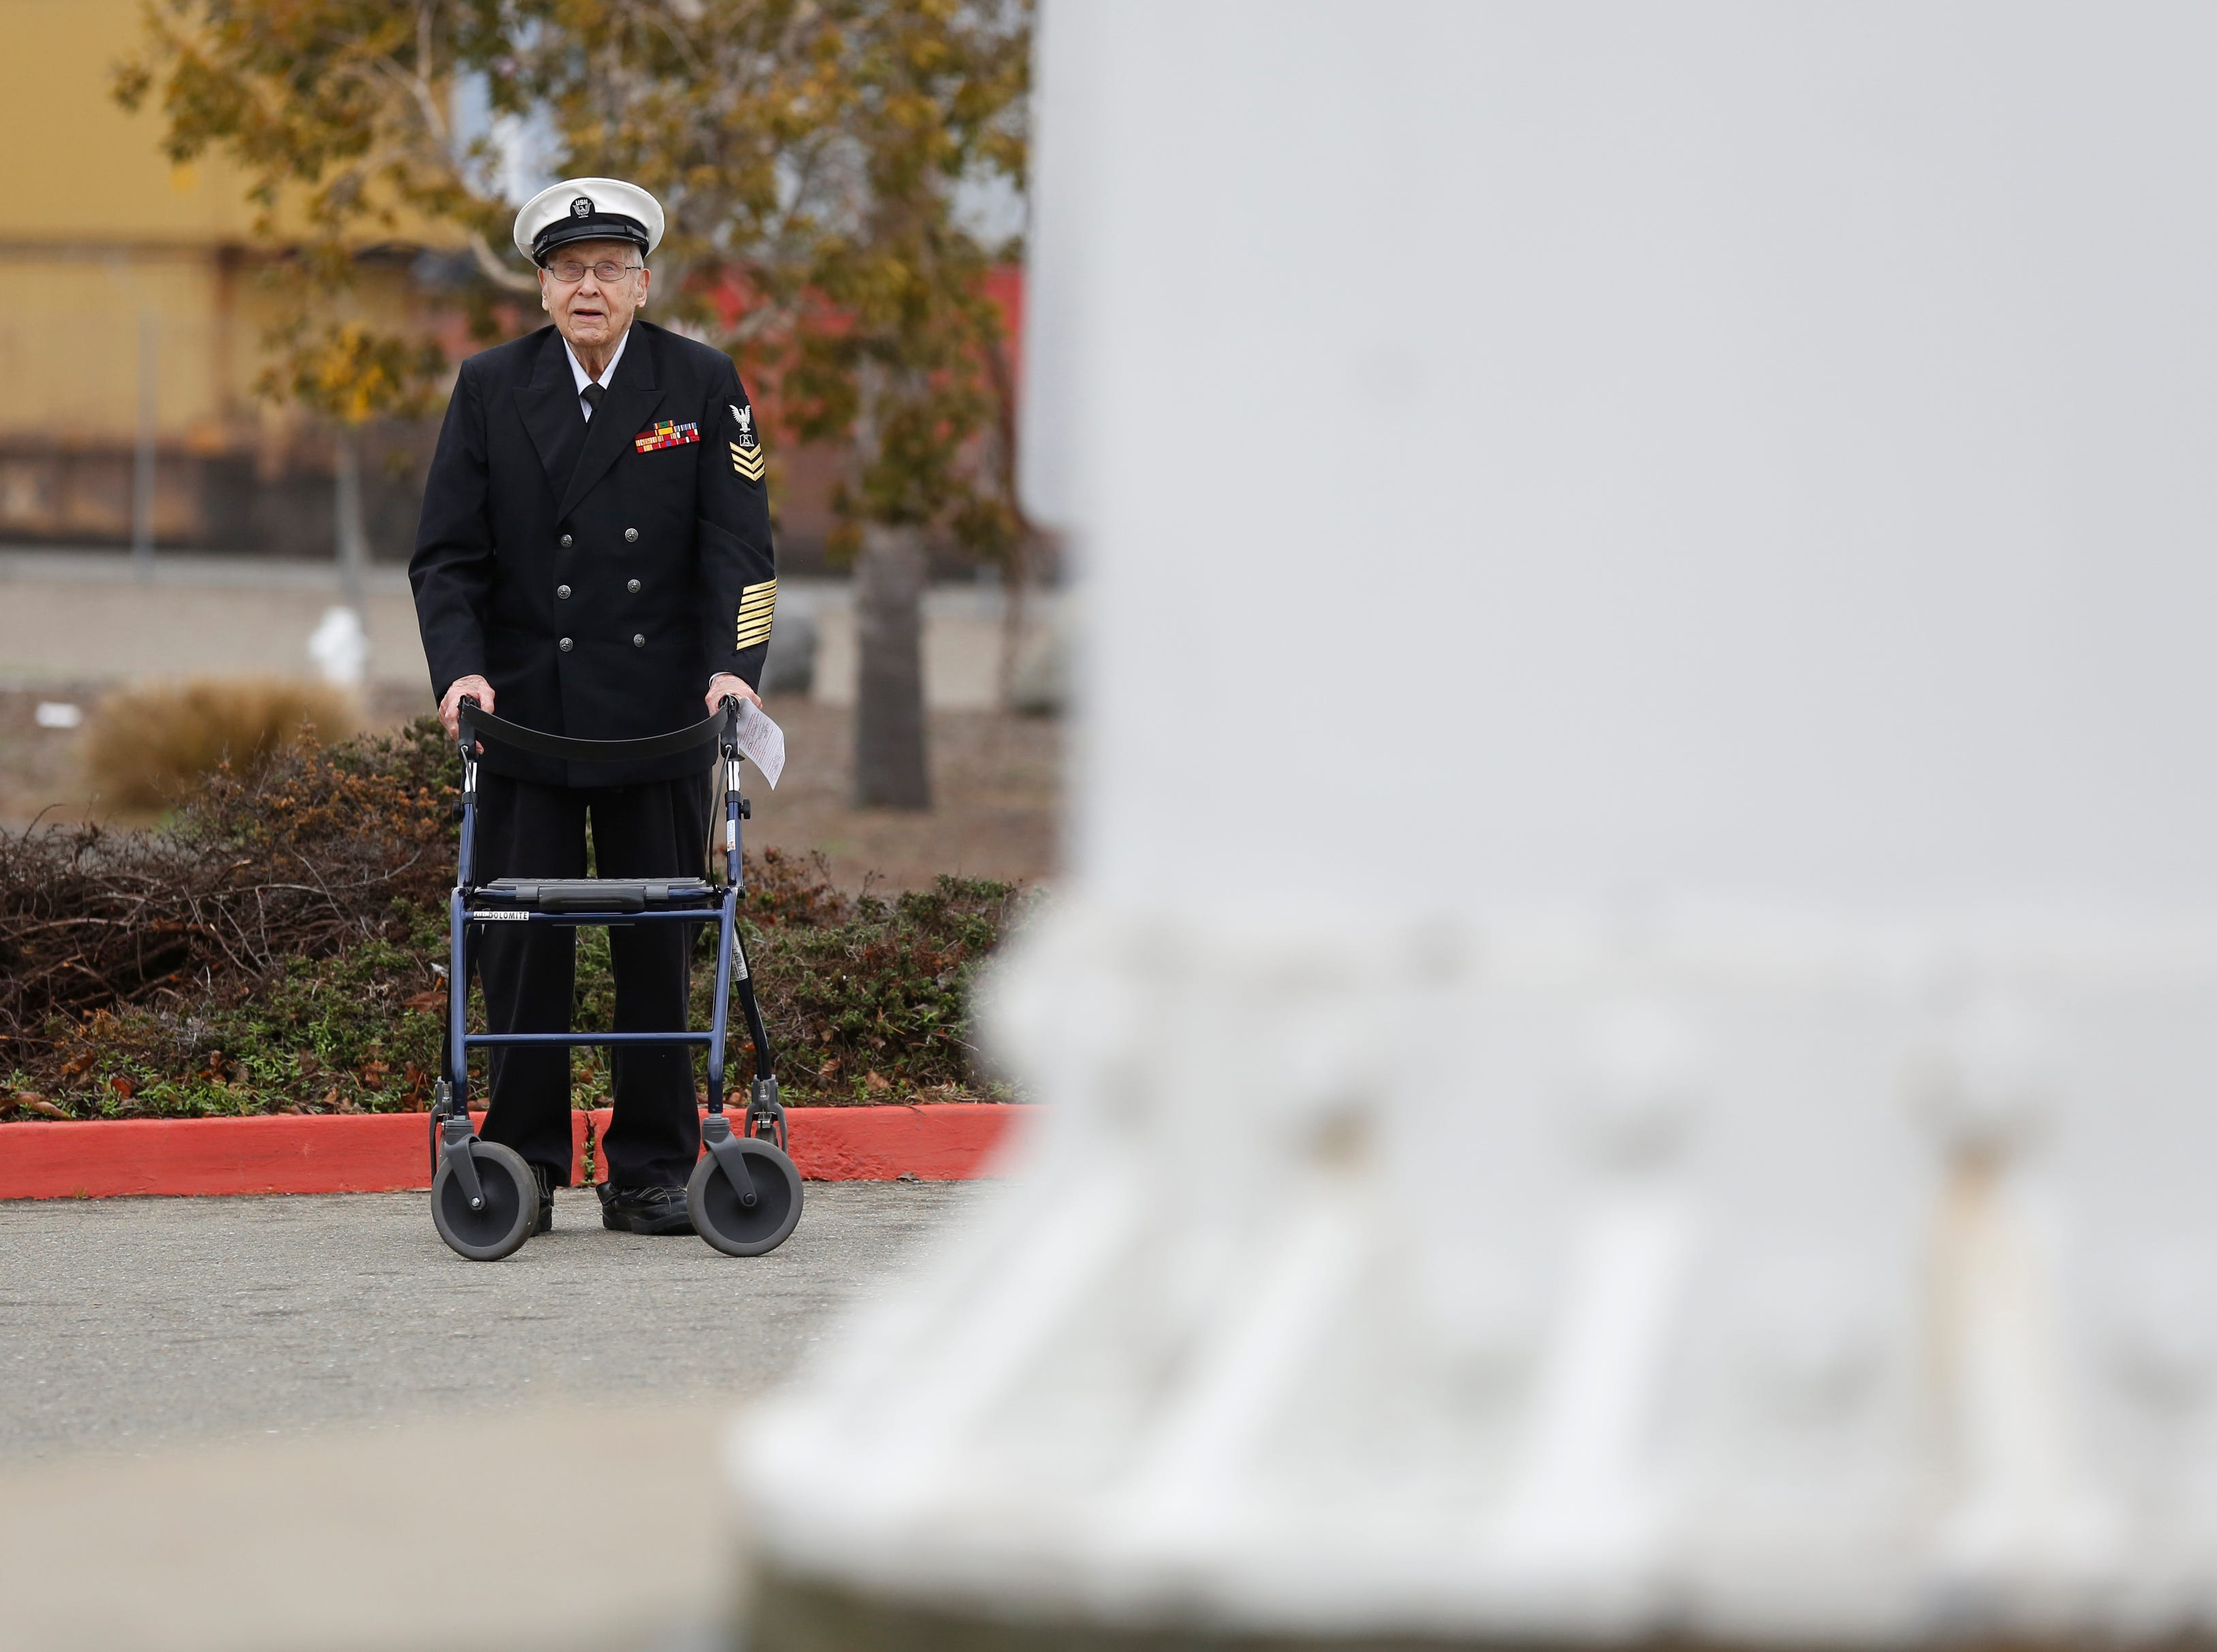 WWII veteran Robert Almquist, 95, from Wisconsin looks up at the mast of the ship he served on, the USS Oakland, that stands at Middle Harbor Shoreline Park in Oakland, Calif., on Friday, Jan. 11, 2019. The Almquist family had raised money on a GoFundMe page to bring the World War II Navy veteran to the West Coast to visit the mast and to see a plaque bearing his name at the Mt. Soledad National Veterans Memorial in La Jolla. Visit Oakland sponsored Almquist to come to Oakland.  (Laura A. Oda/Bay Area News Group)